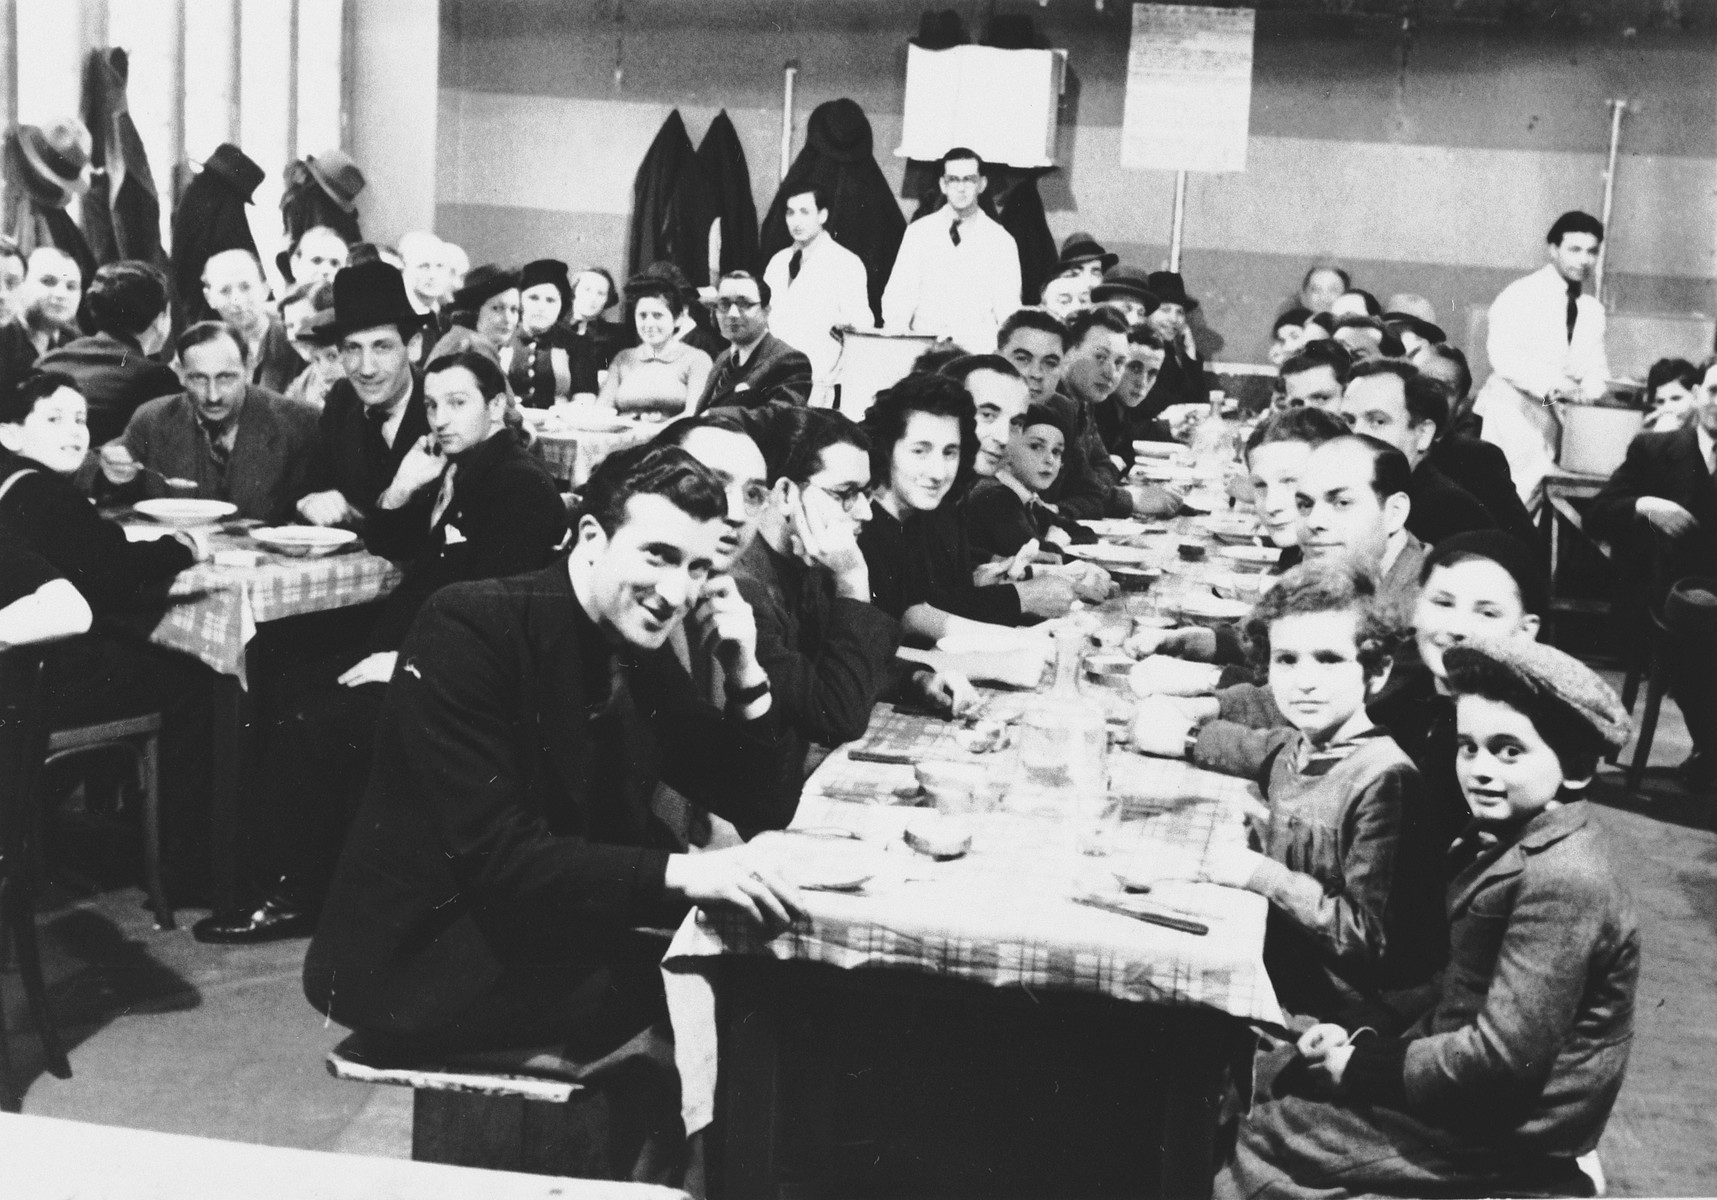 Jewish refugees from the Third Reich eat a meal in the dining hall of a refugee center in Luxembourg sponsored by the ESRA Jewish social welfare organization.